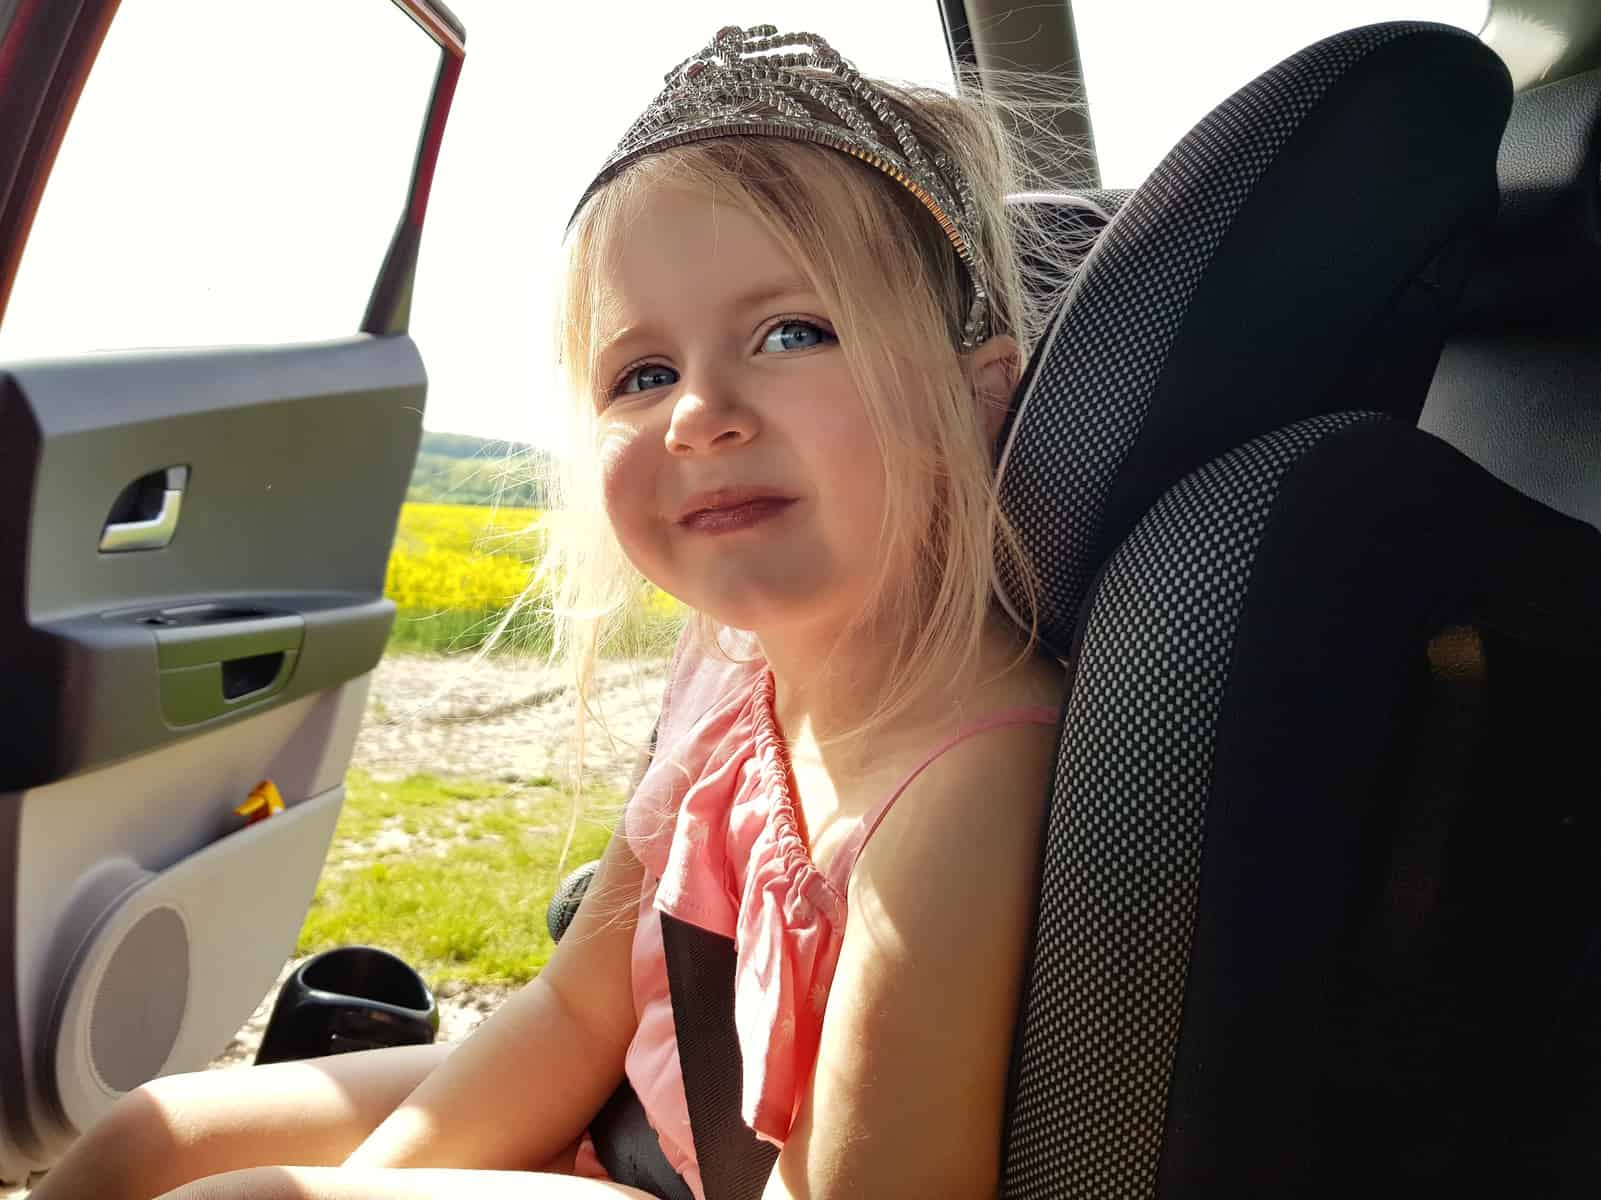 Little girl in pink outfit and tiara sat in car seat, car door open onto a field of oilseed rape